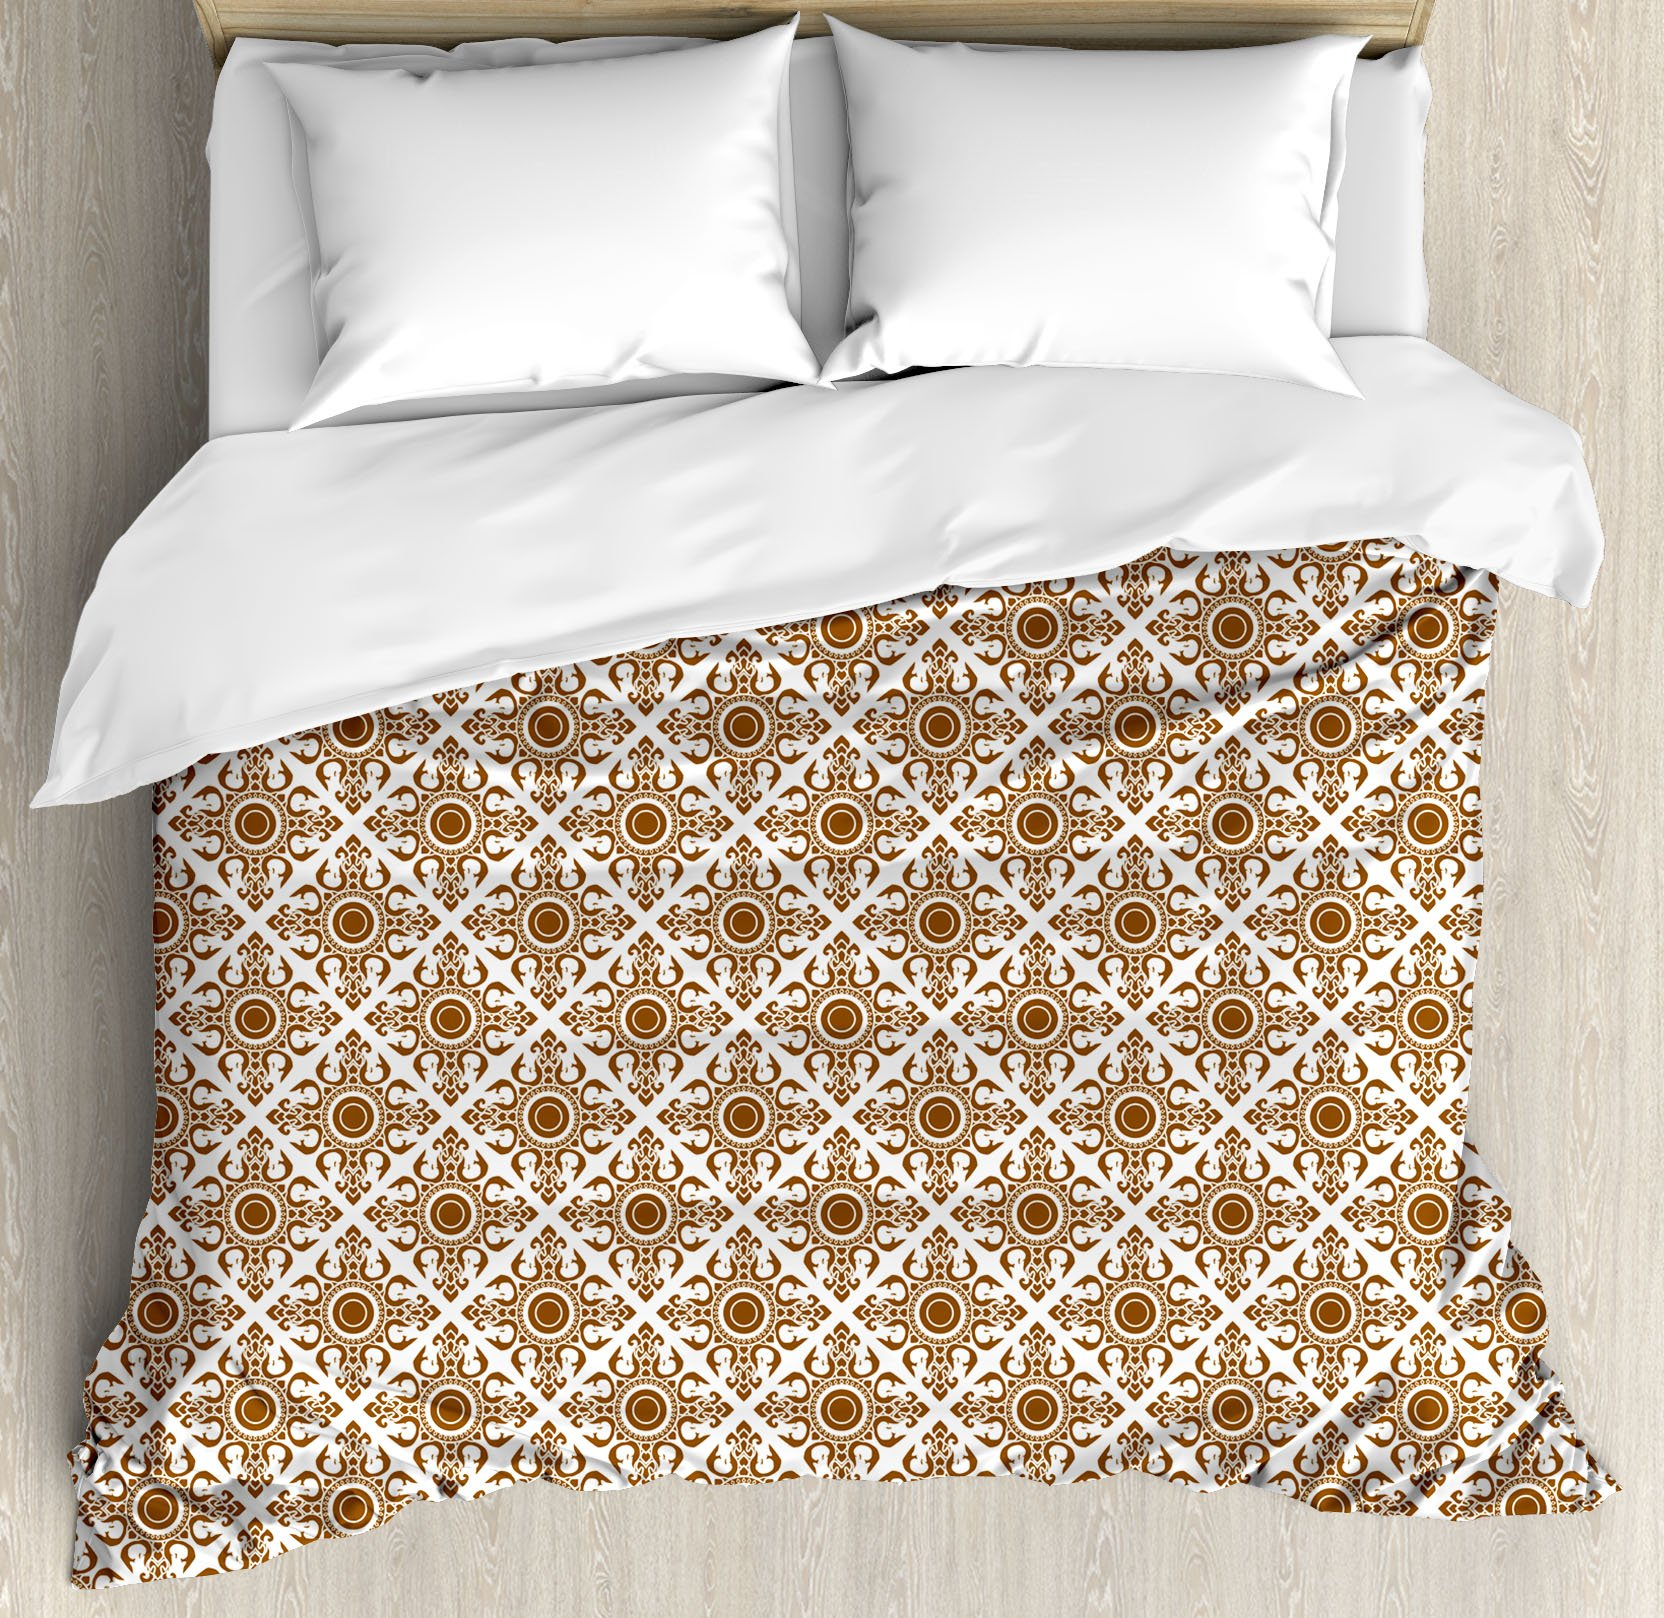 Ethnic Duvet Cover Set by Ambesonne, Thai Mosaic Art Culture Stylized Abstract Lines Dots Pattern Folk Asian Design, 3 Piece Bedding Set with Pillow Shams, King Size, Redwood White